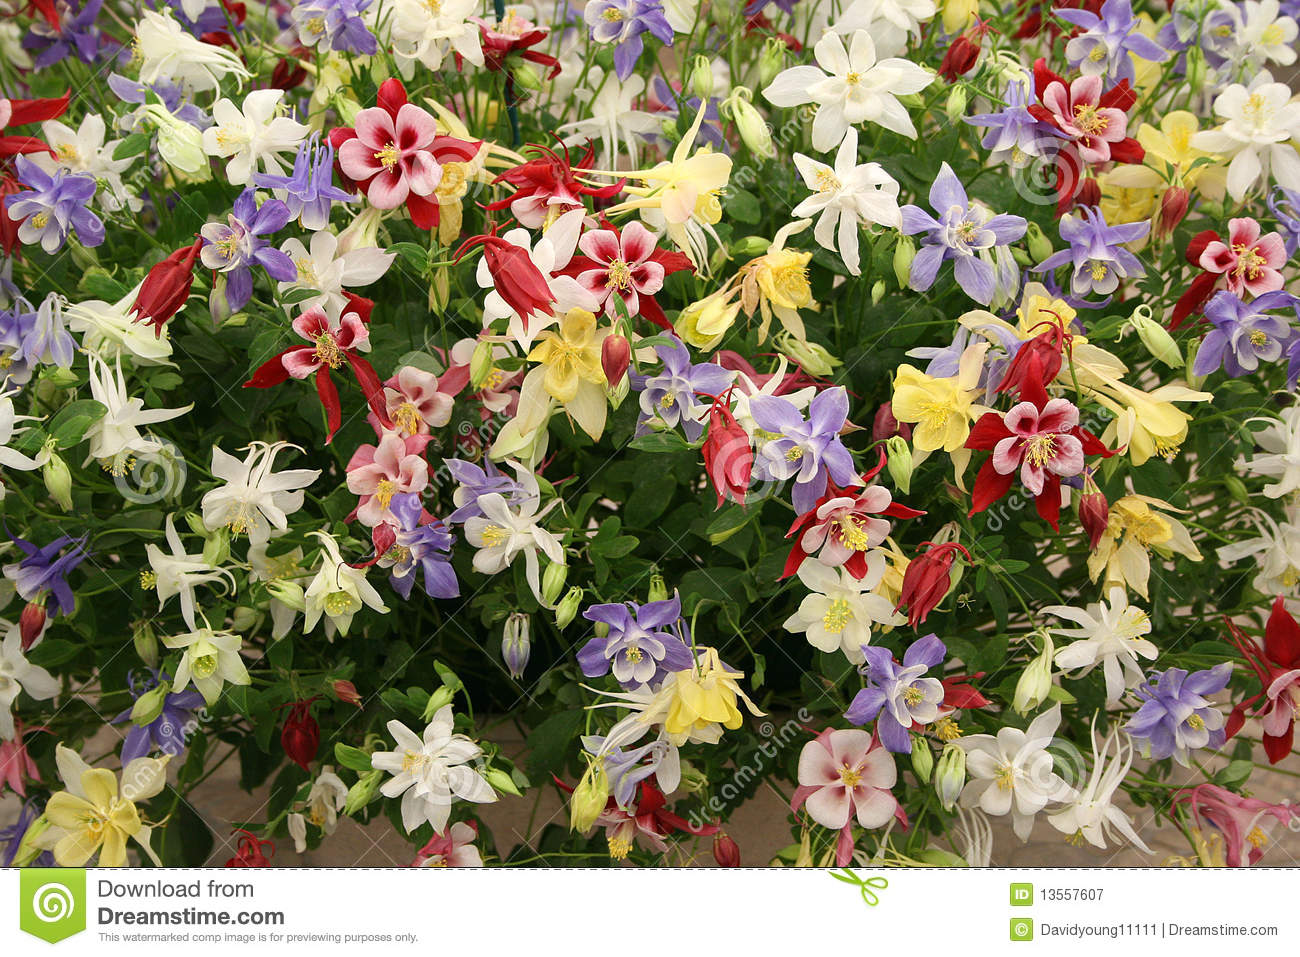 Aquilegia display at chelsea flower show royalty free stock photography image 13557607 - Royal flower show ...